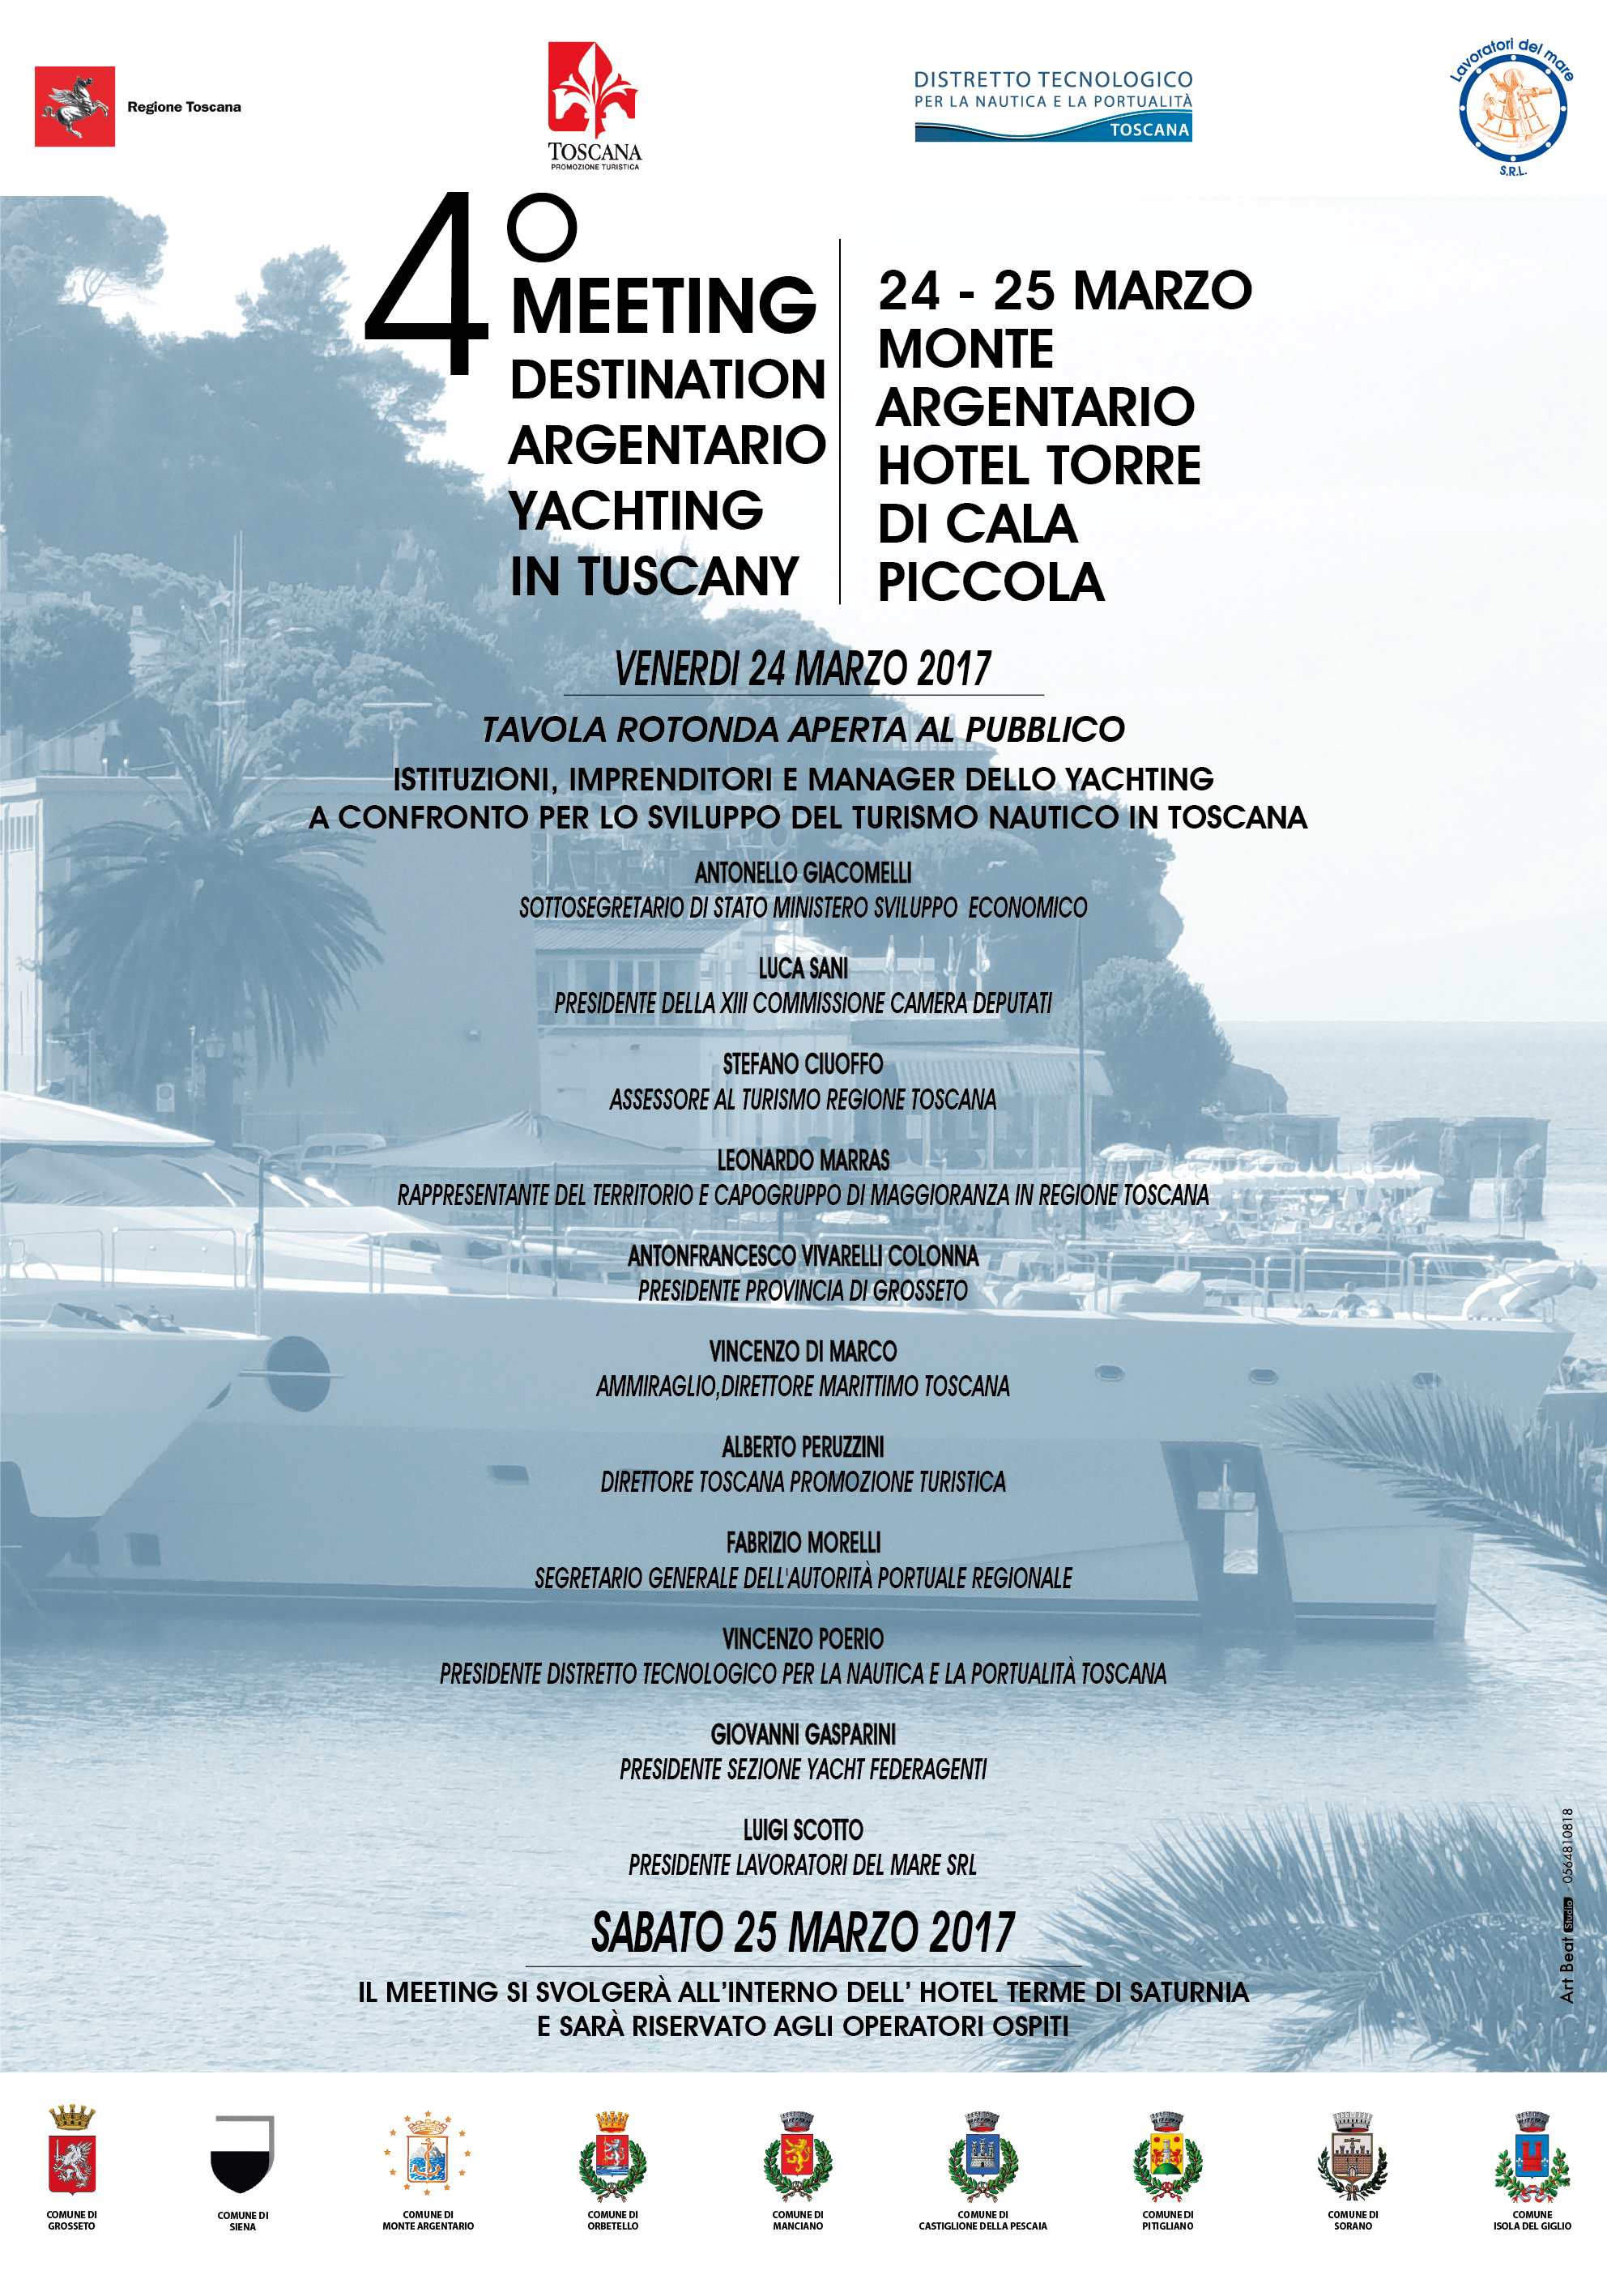 Destination Argentario Yachting in Tuscany